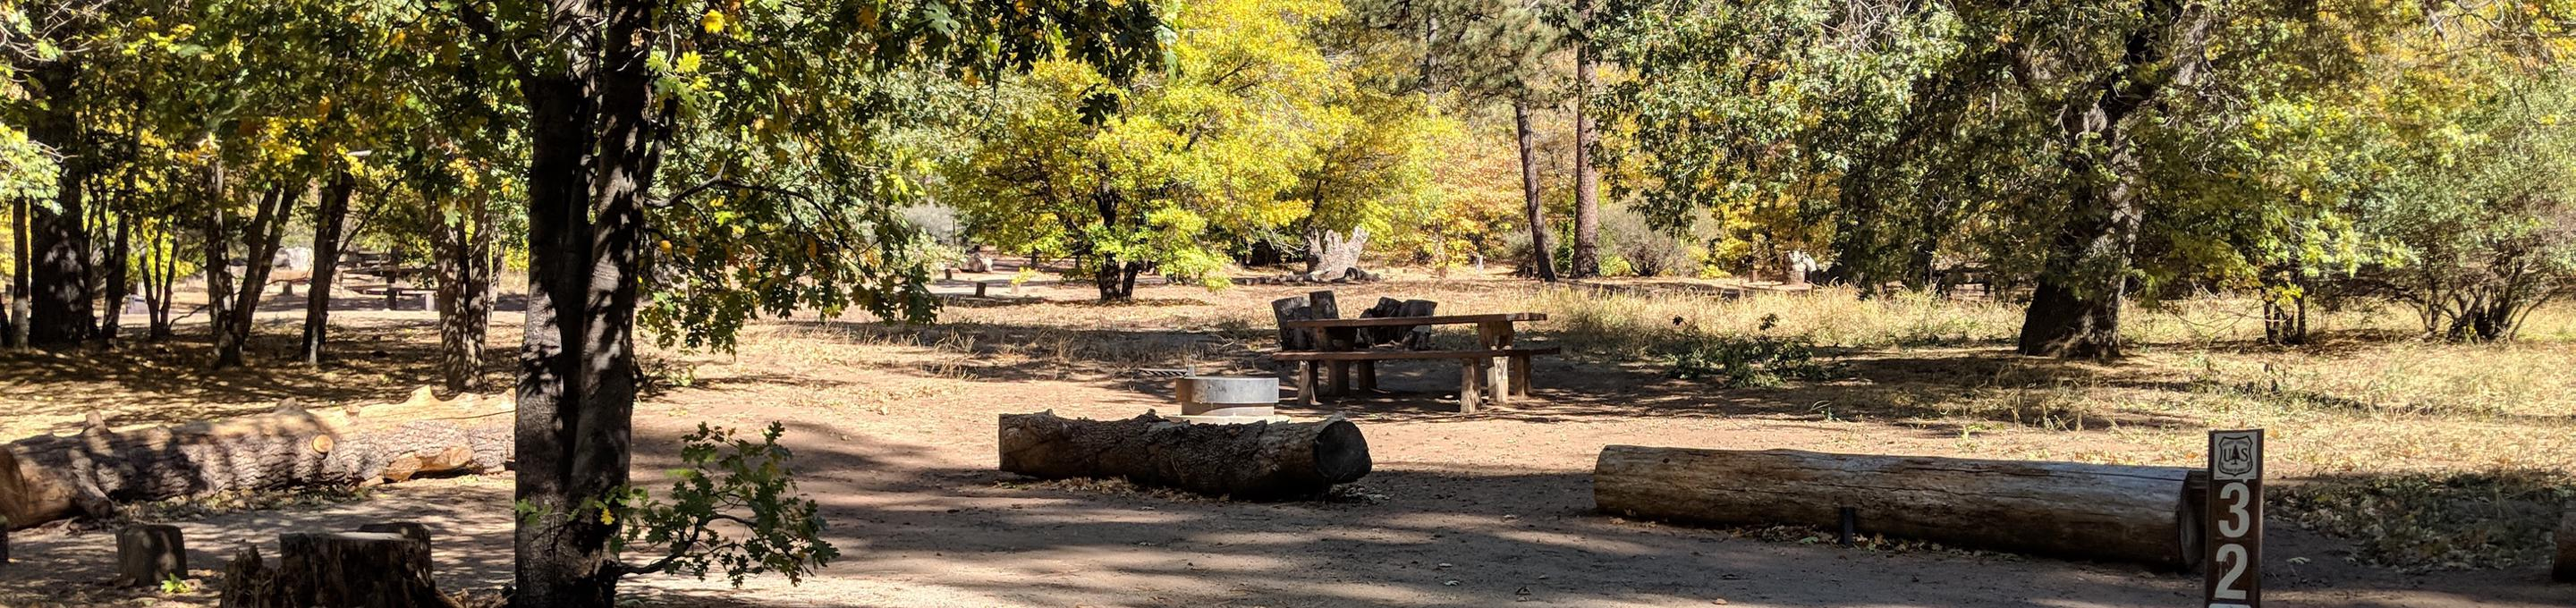 Laguna Campground site #32 wooded camping space view and picnic area.